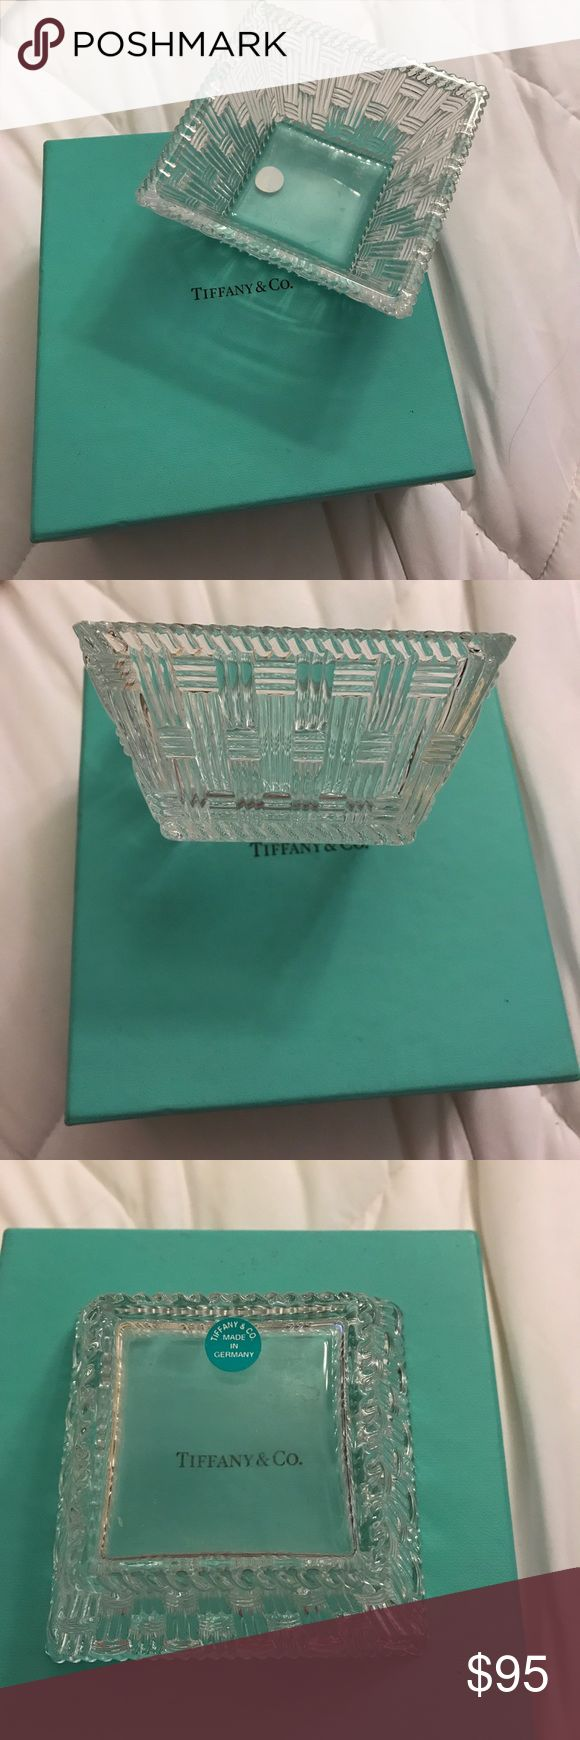 Authentic Tiffany and Company little square bowl I used this for my jewelry.  No trades and will only negotiate price thru offer button. Tiffany & Co. Accessories